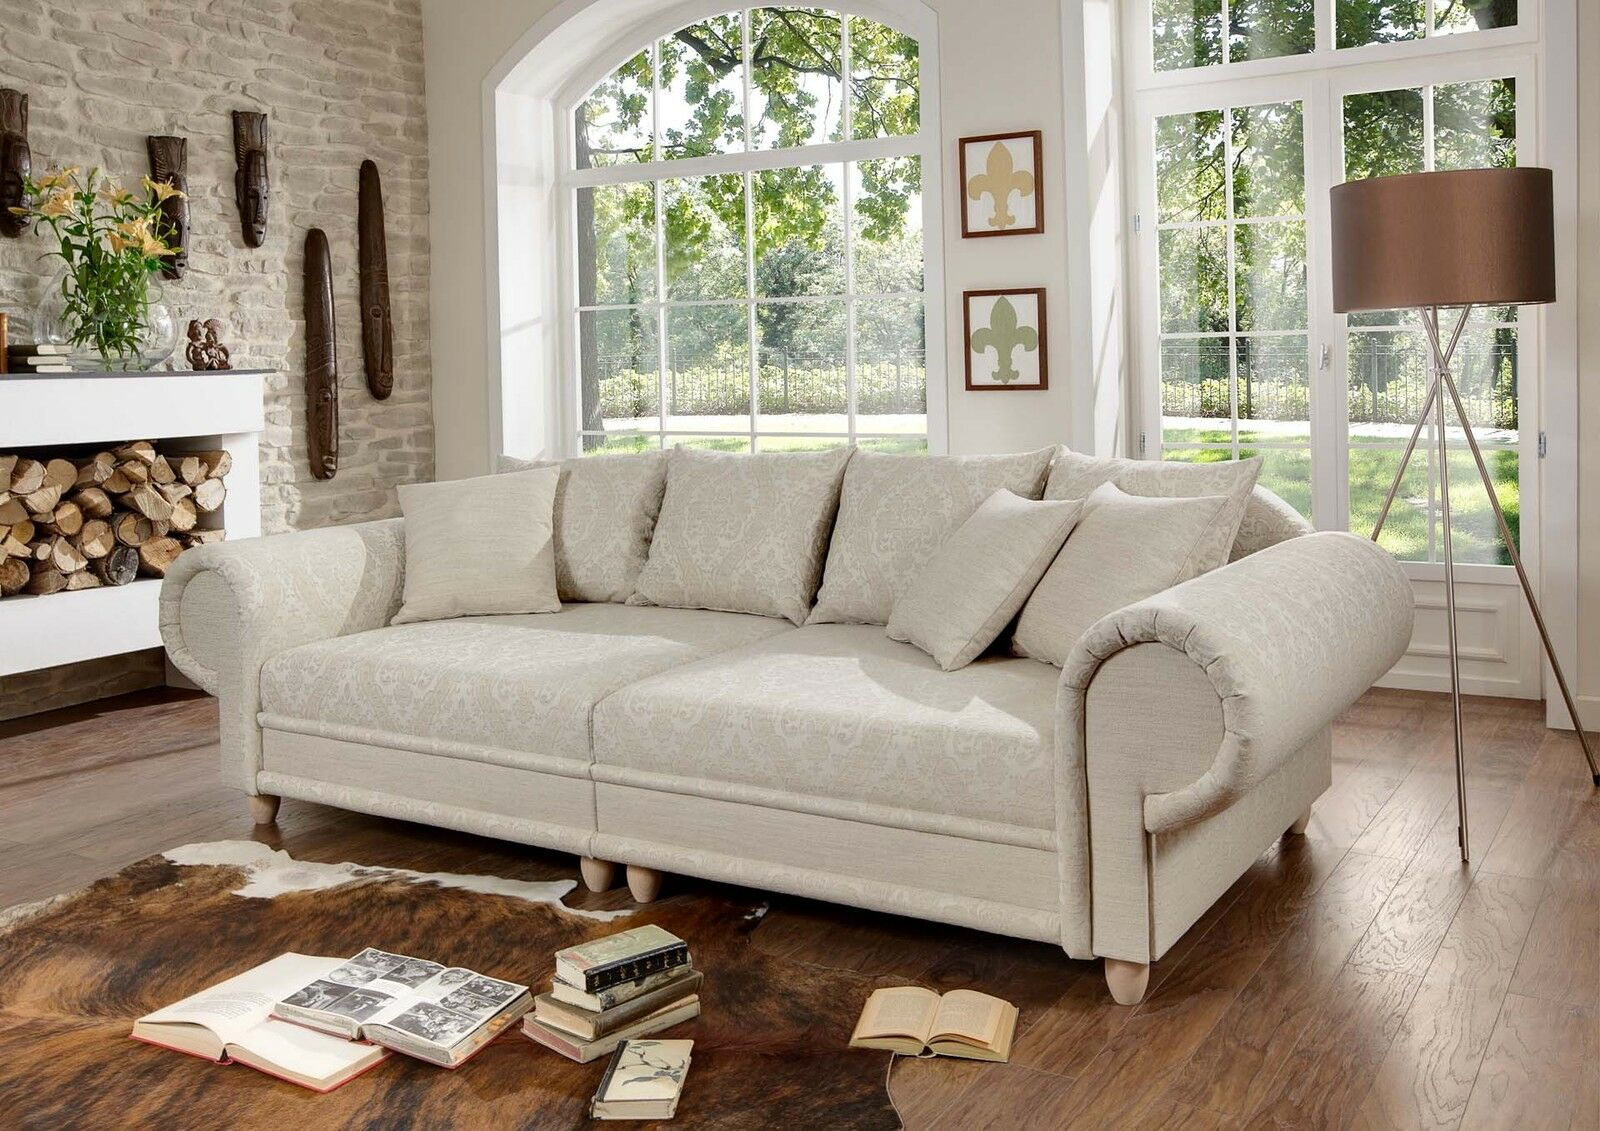 big sofa julia kolonialstil xxl mega kolonialsofa federkern shabby chic eur picclick be. Black Bedroom Furniture Sets. Home Design Ideas